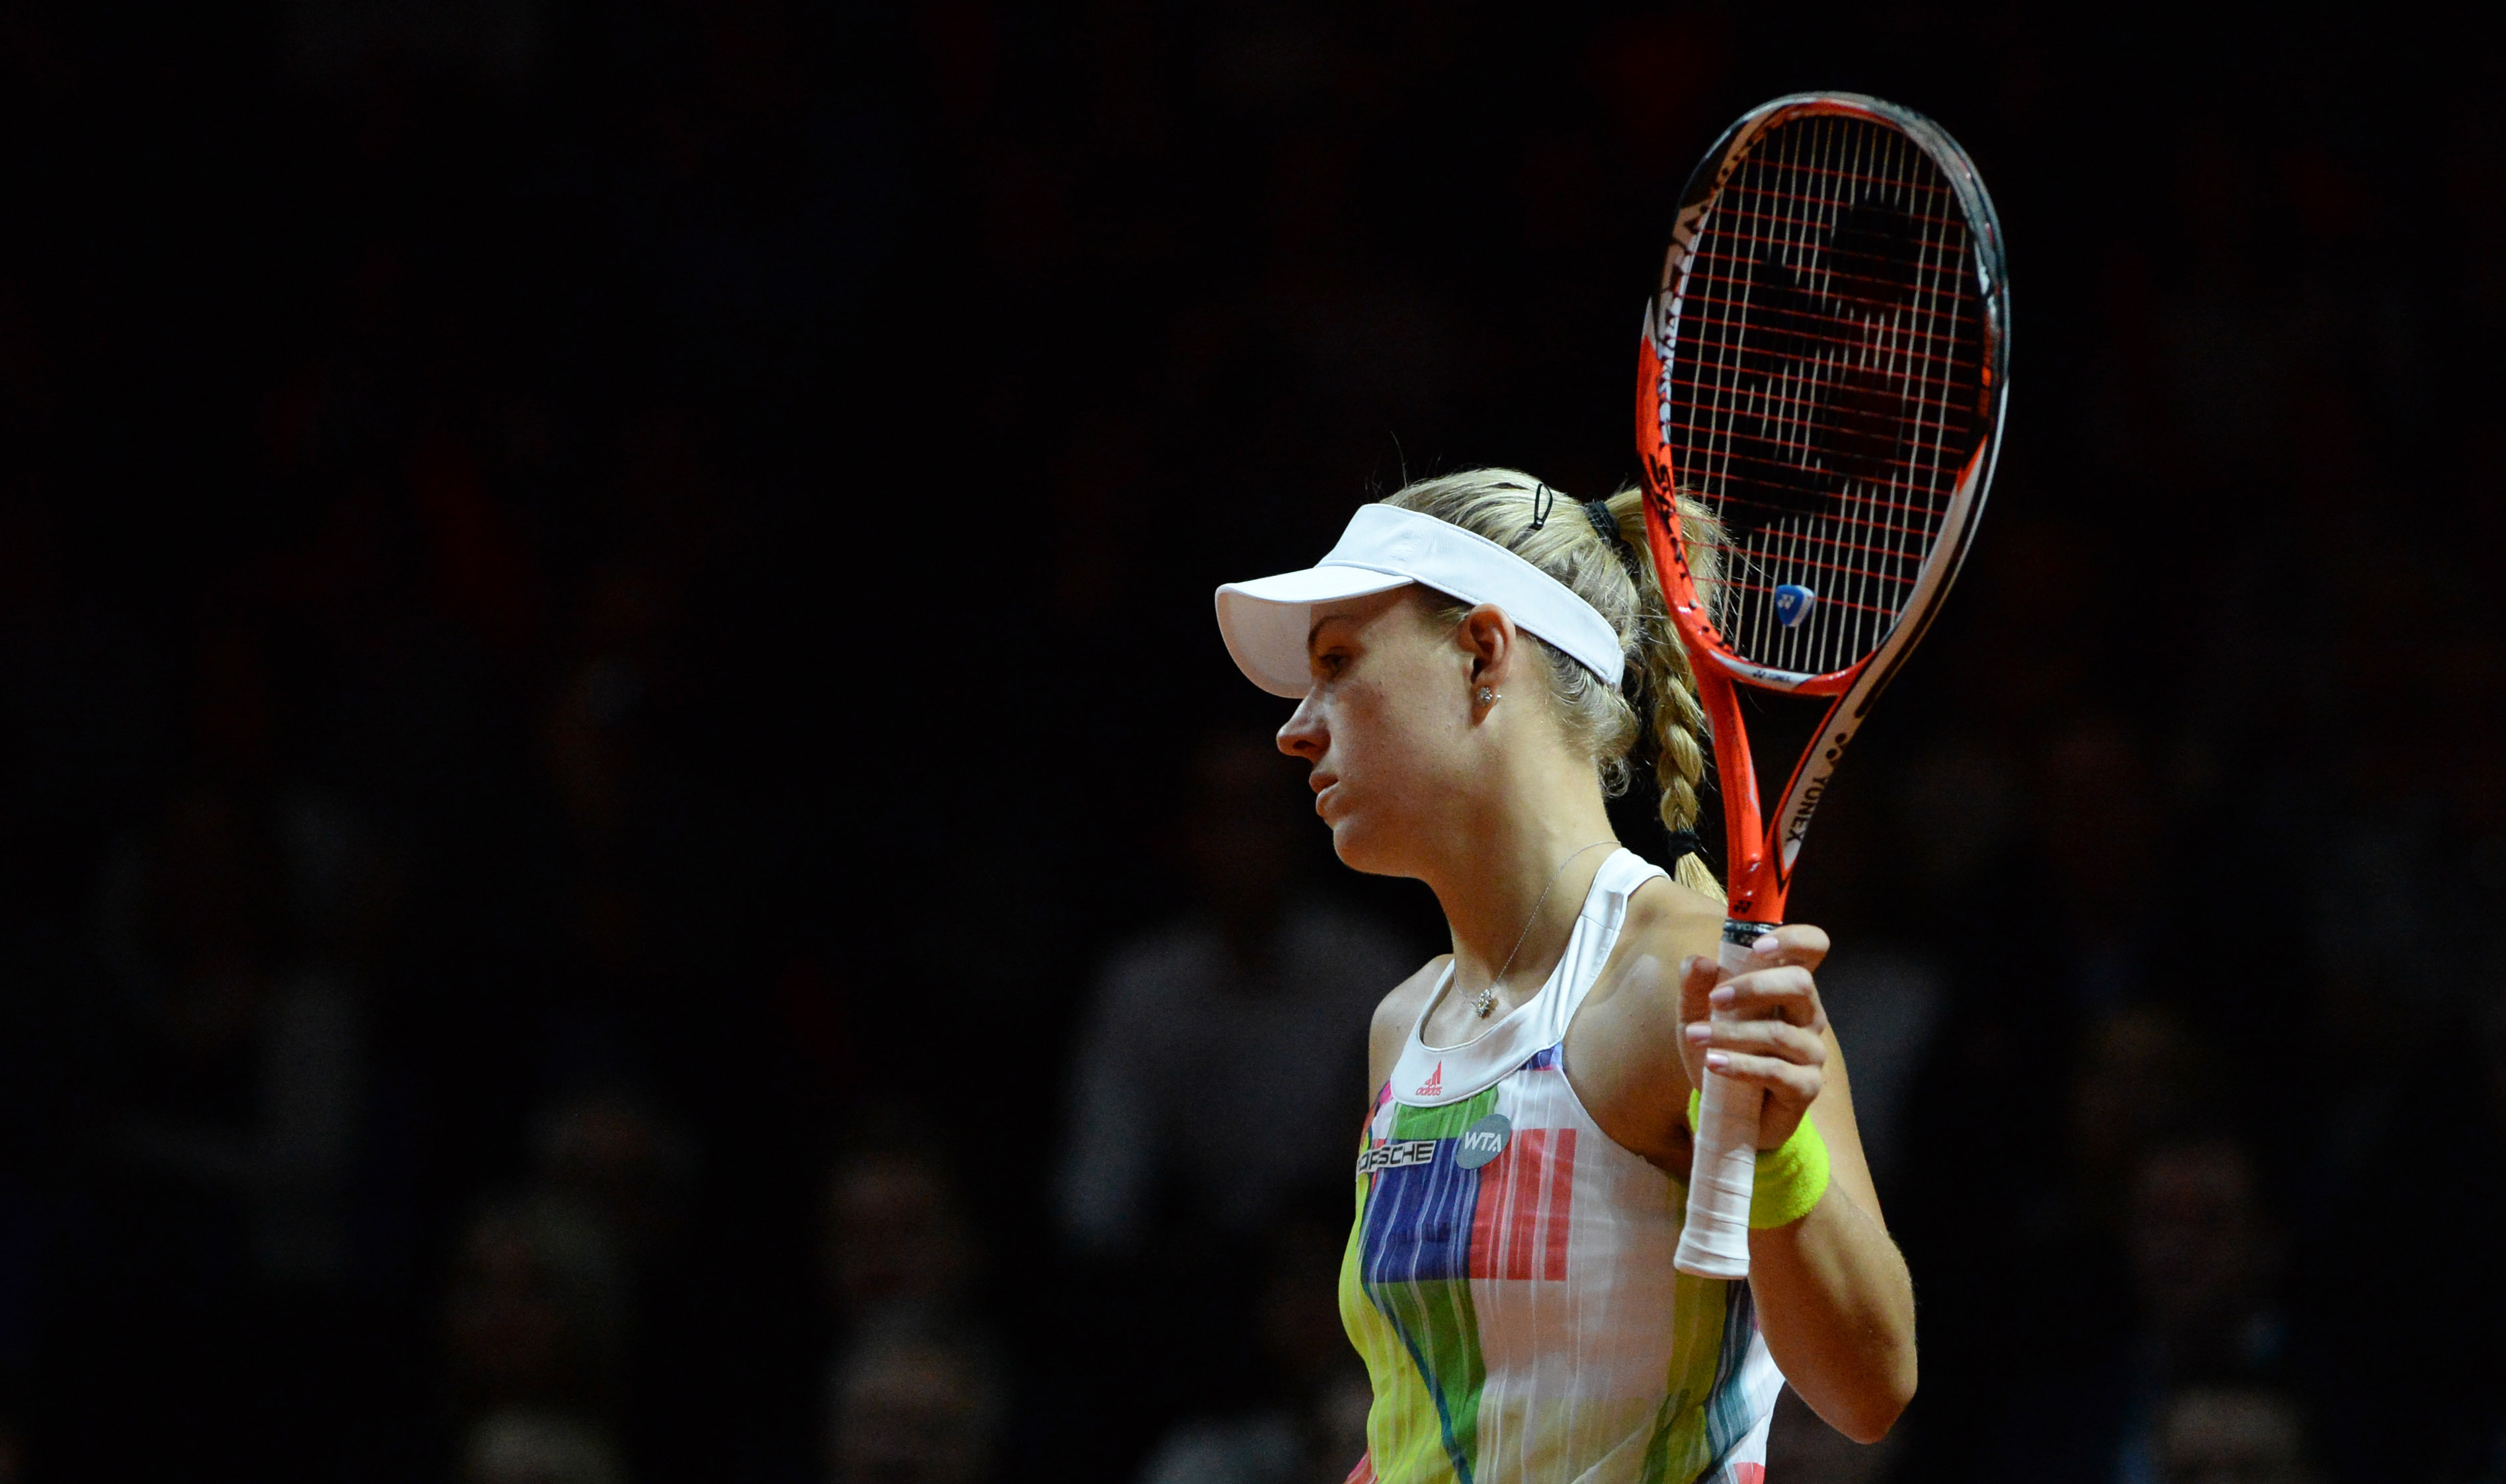 Angelique Kerber from Germany holds her rackted during her semifinal match against Petra Kvitova from Czech Republic at the WTA tennis tournament in Stuttgart, southern Germany, Saturday, April 23, 2016. (Marijan Murat/dpa via AP)